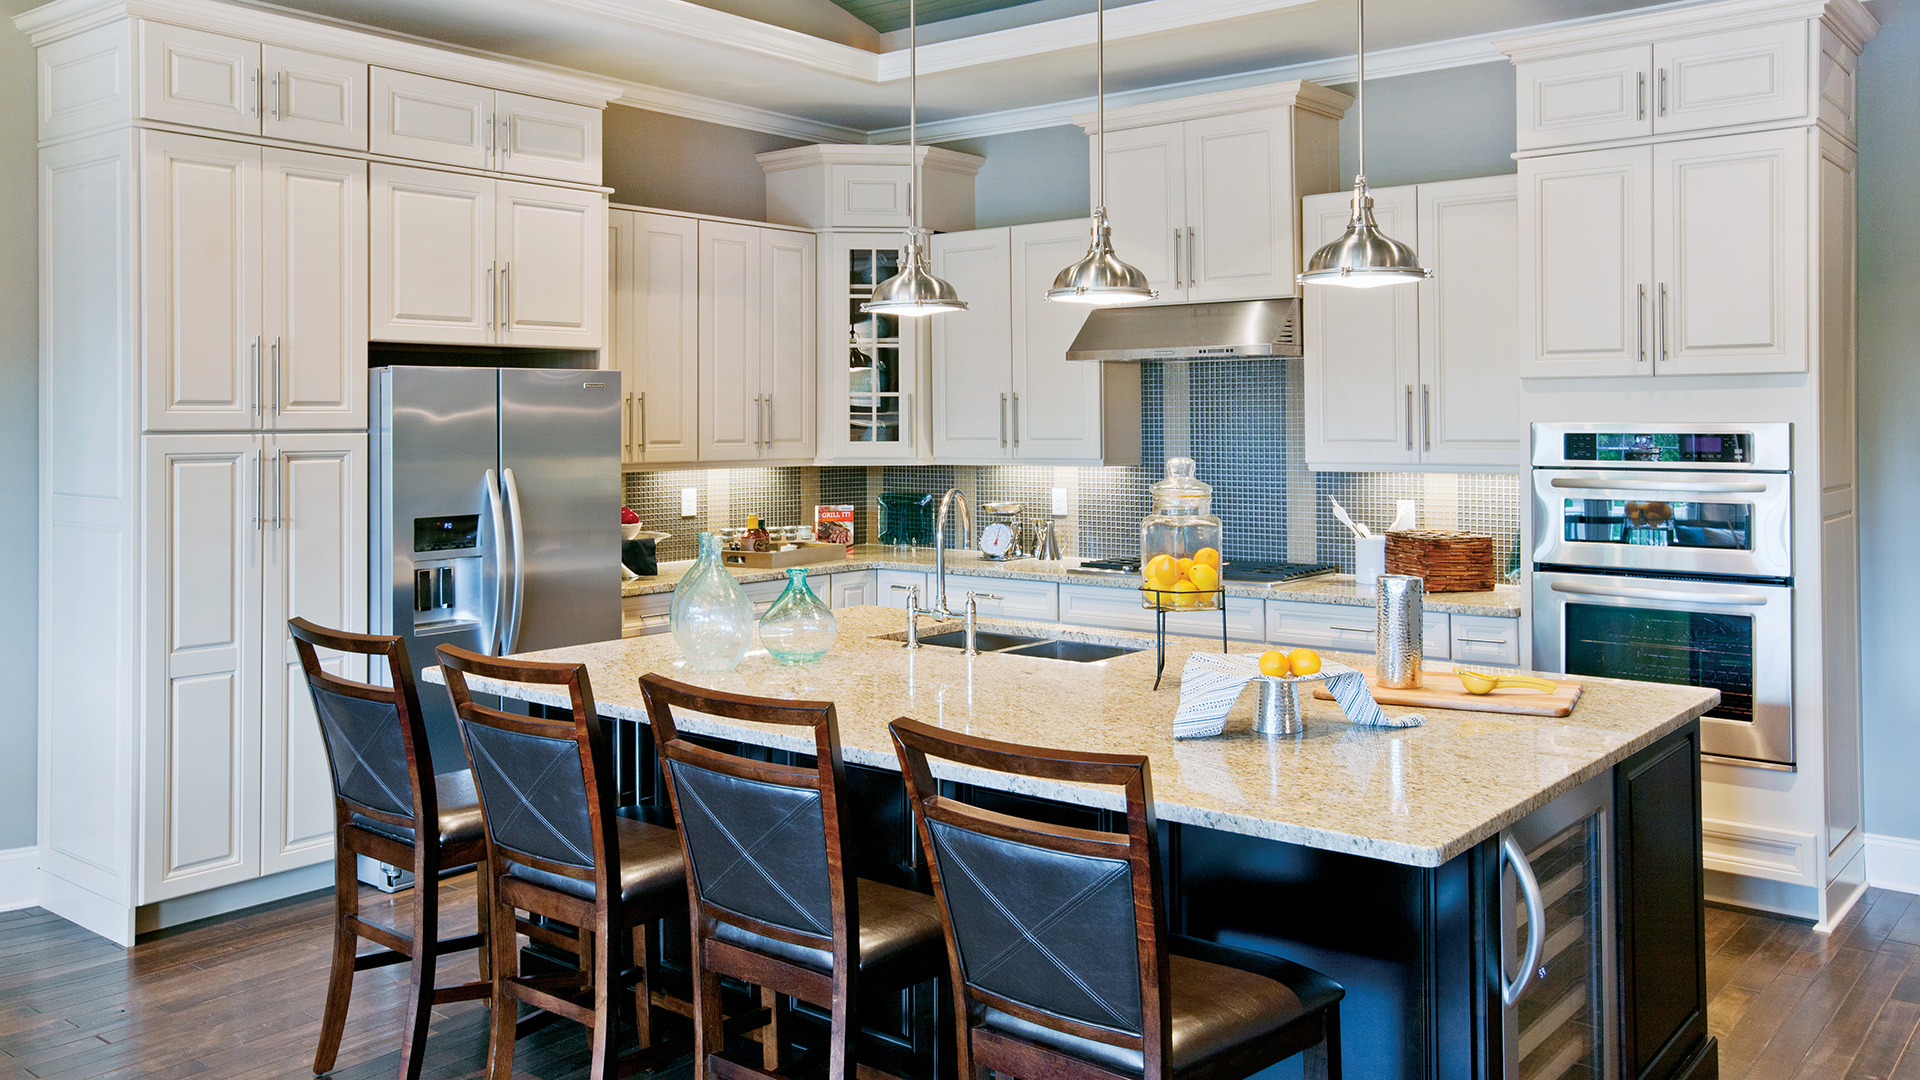 Enjoy cooking in your sunlit kitchen with ample counter space and large center island